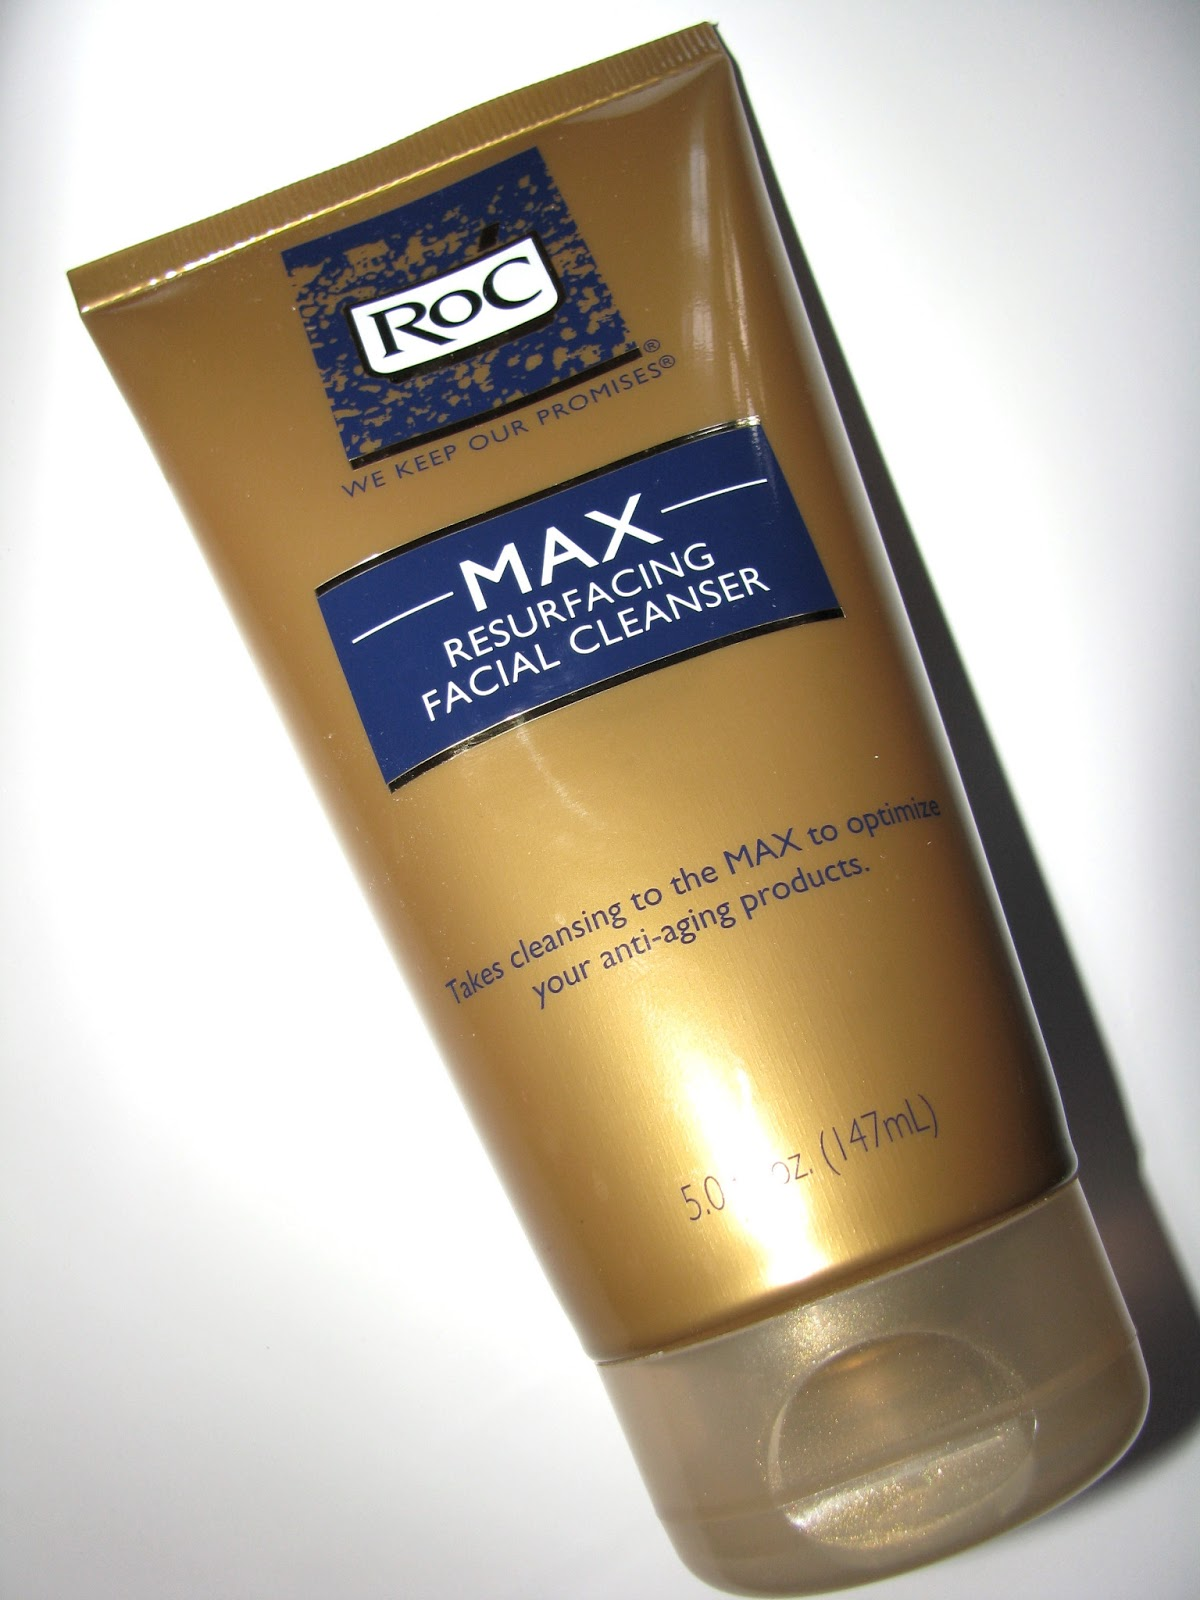 The Beauty Alchemist Roc Max Resurfacing Cleanser